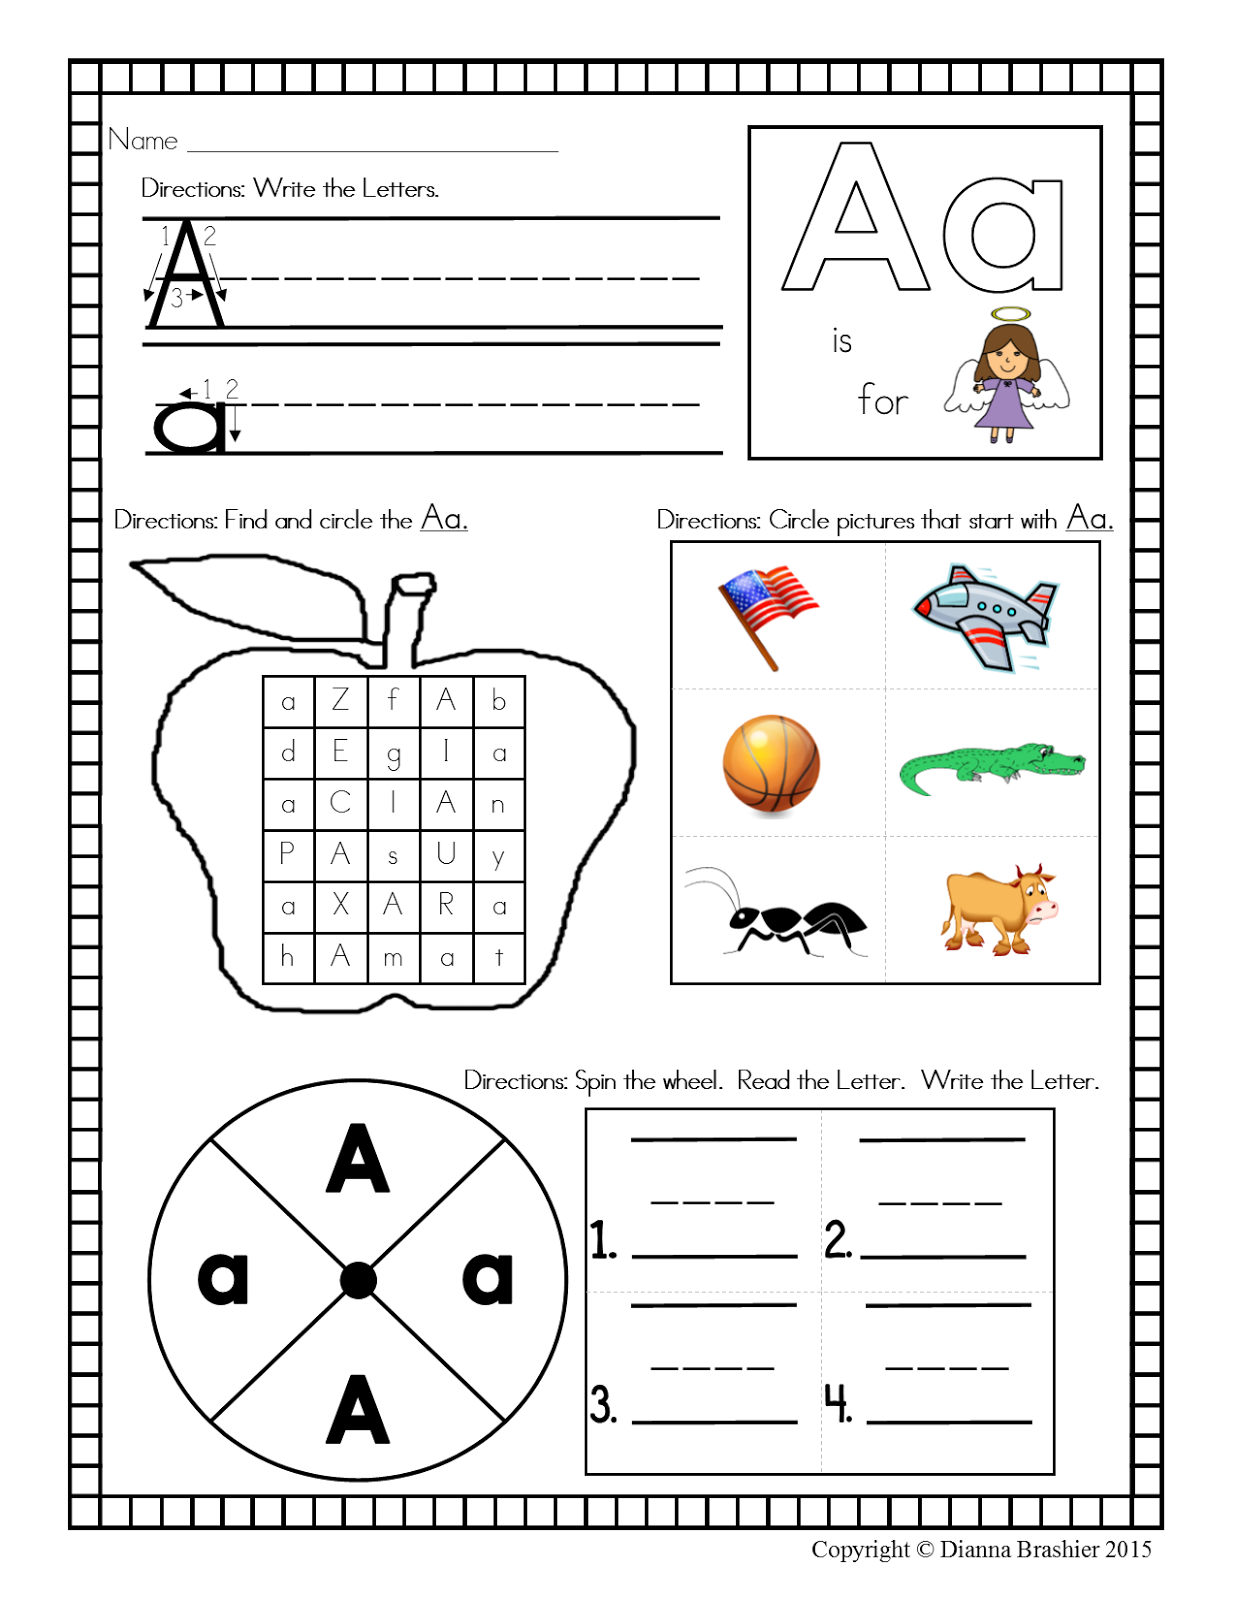 Teachers R Us Alphabet Worksheet With A Christian Theme